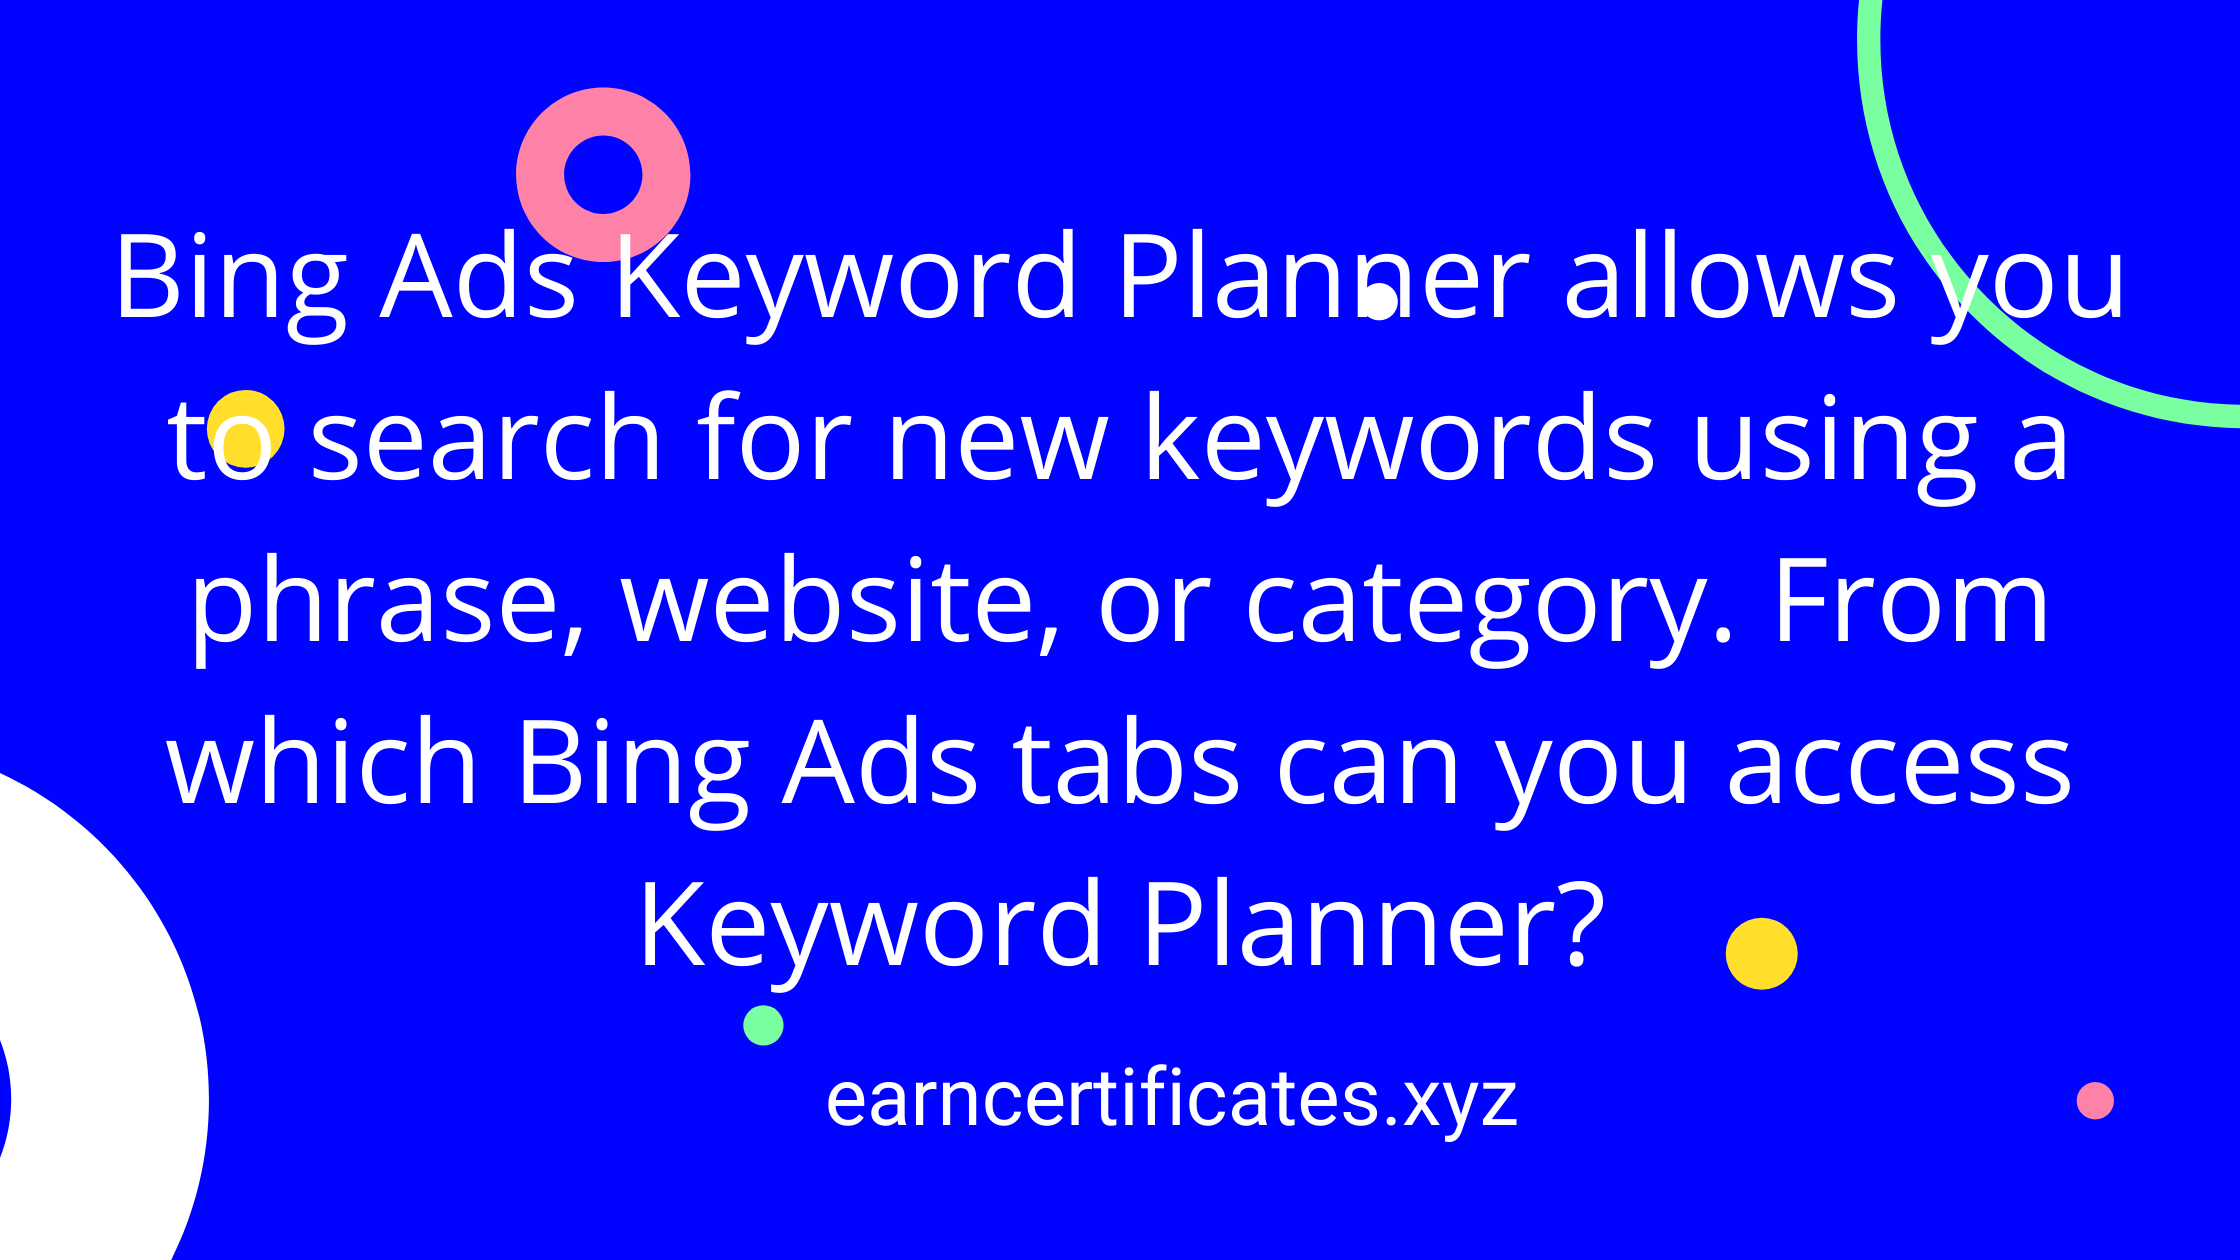 Bing Ads Keyword Planner allows you to search for new keywords using a phrase, website, or category. From which Bing Ads tabs can you access Keyword Planner?